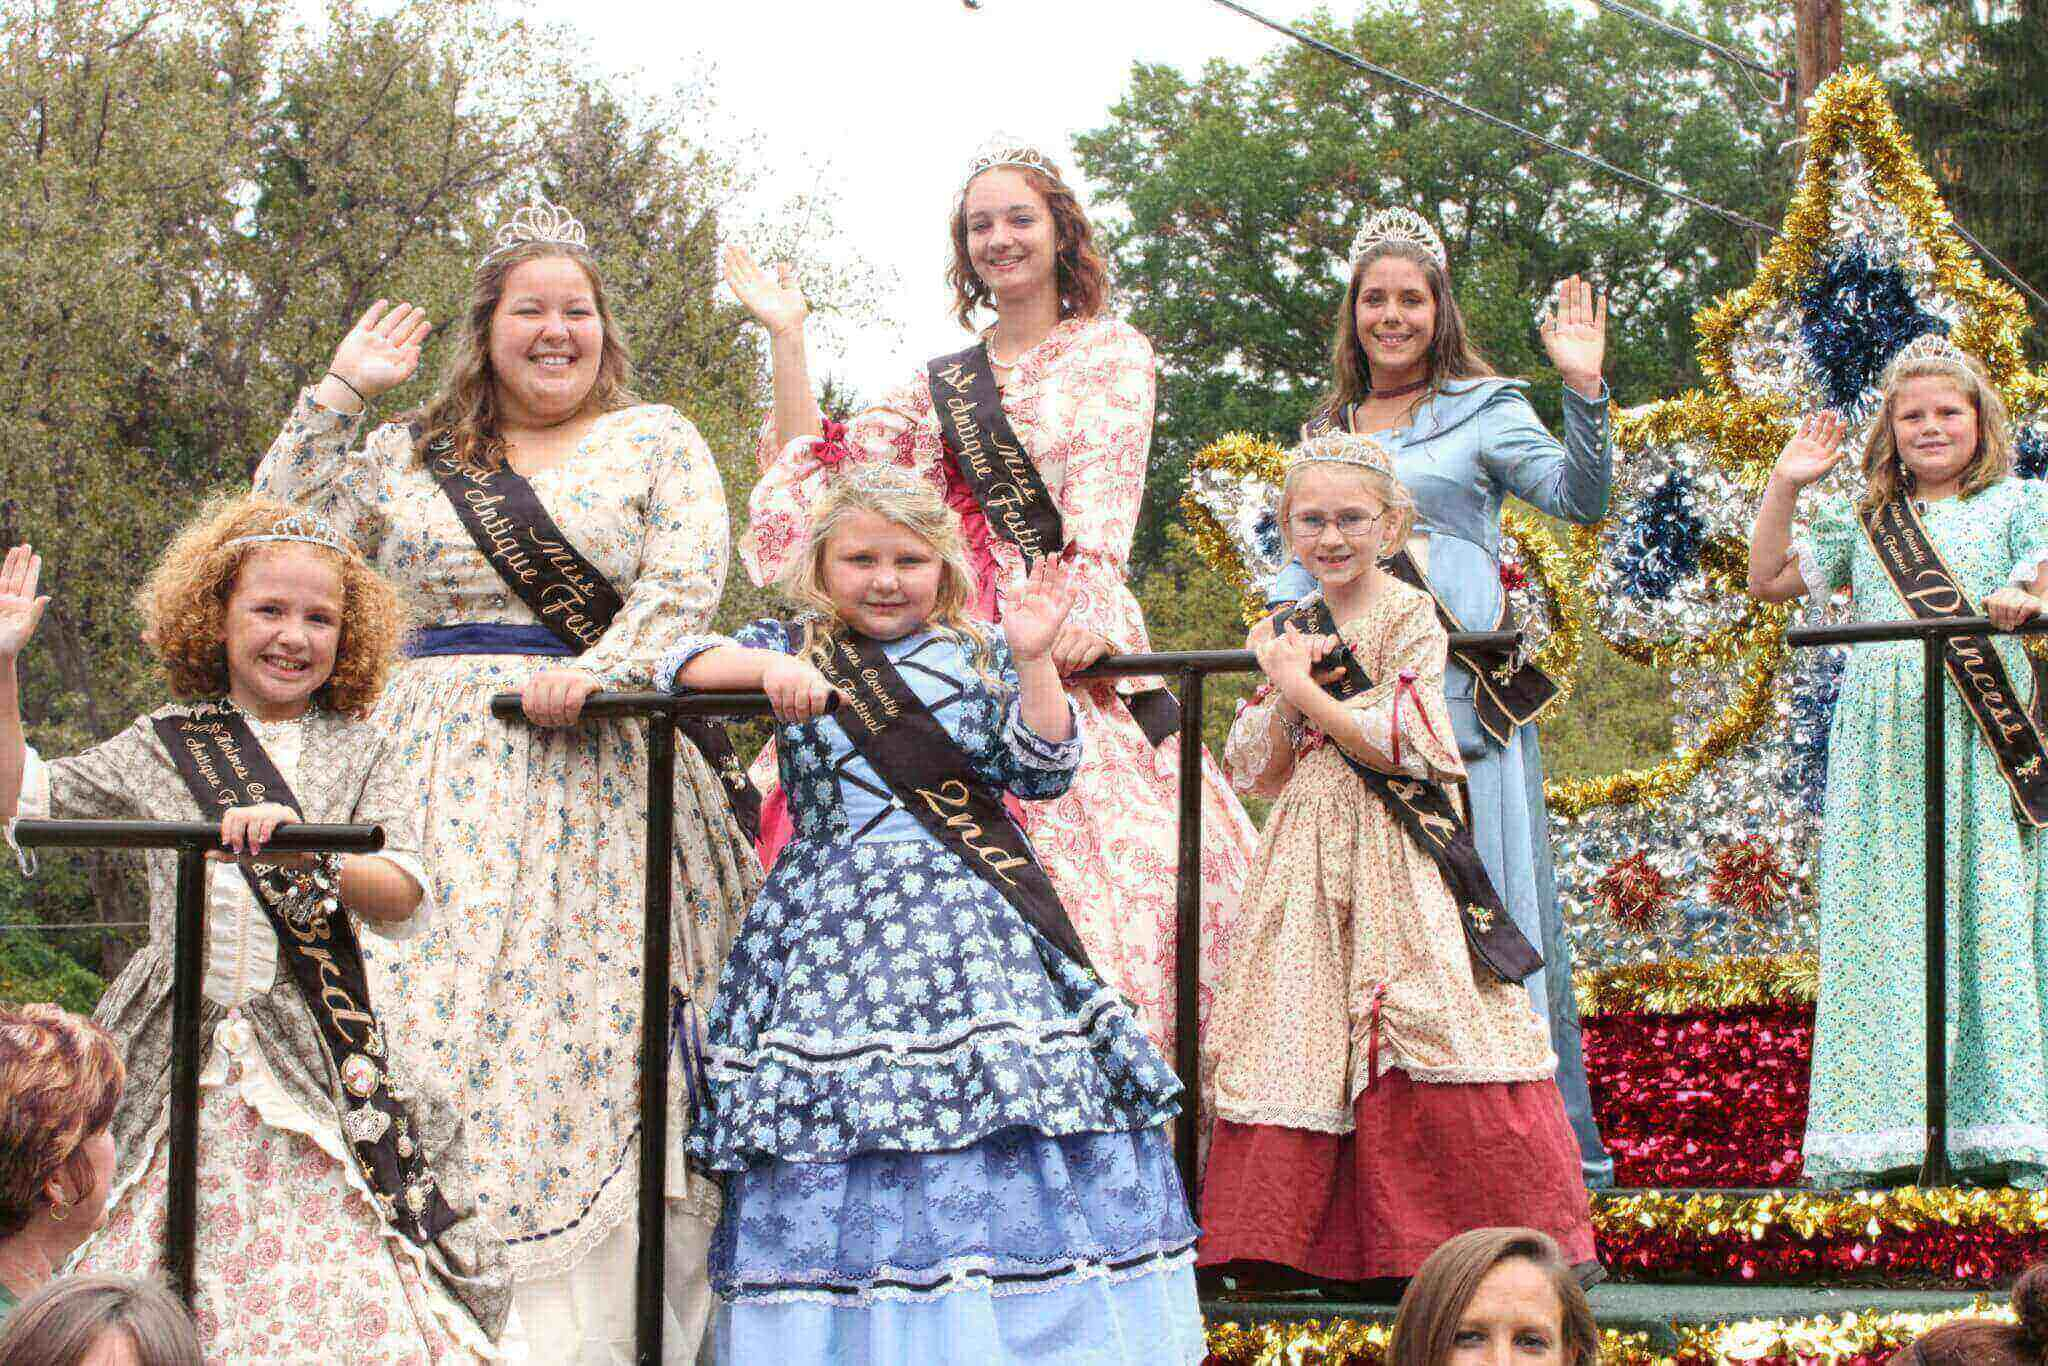 Seven girls stand and wave on a float in a parade. They are all wearing vintage dresses with sashes indicating what place they won in a contest.